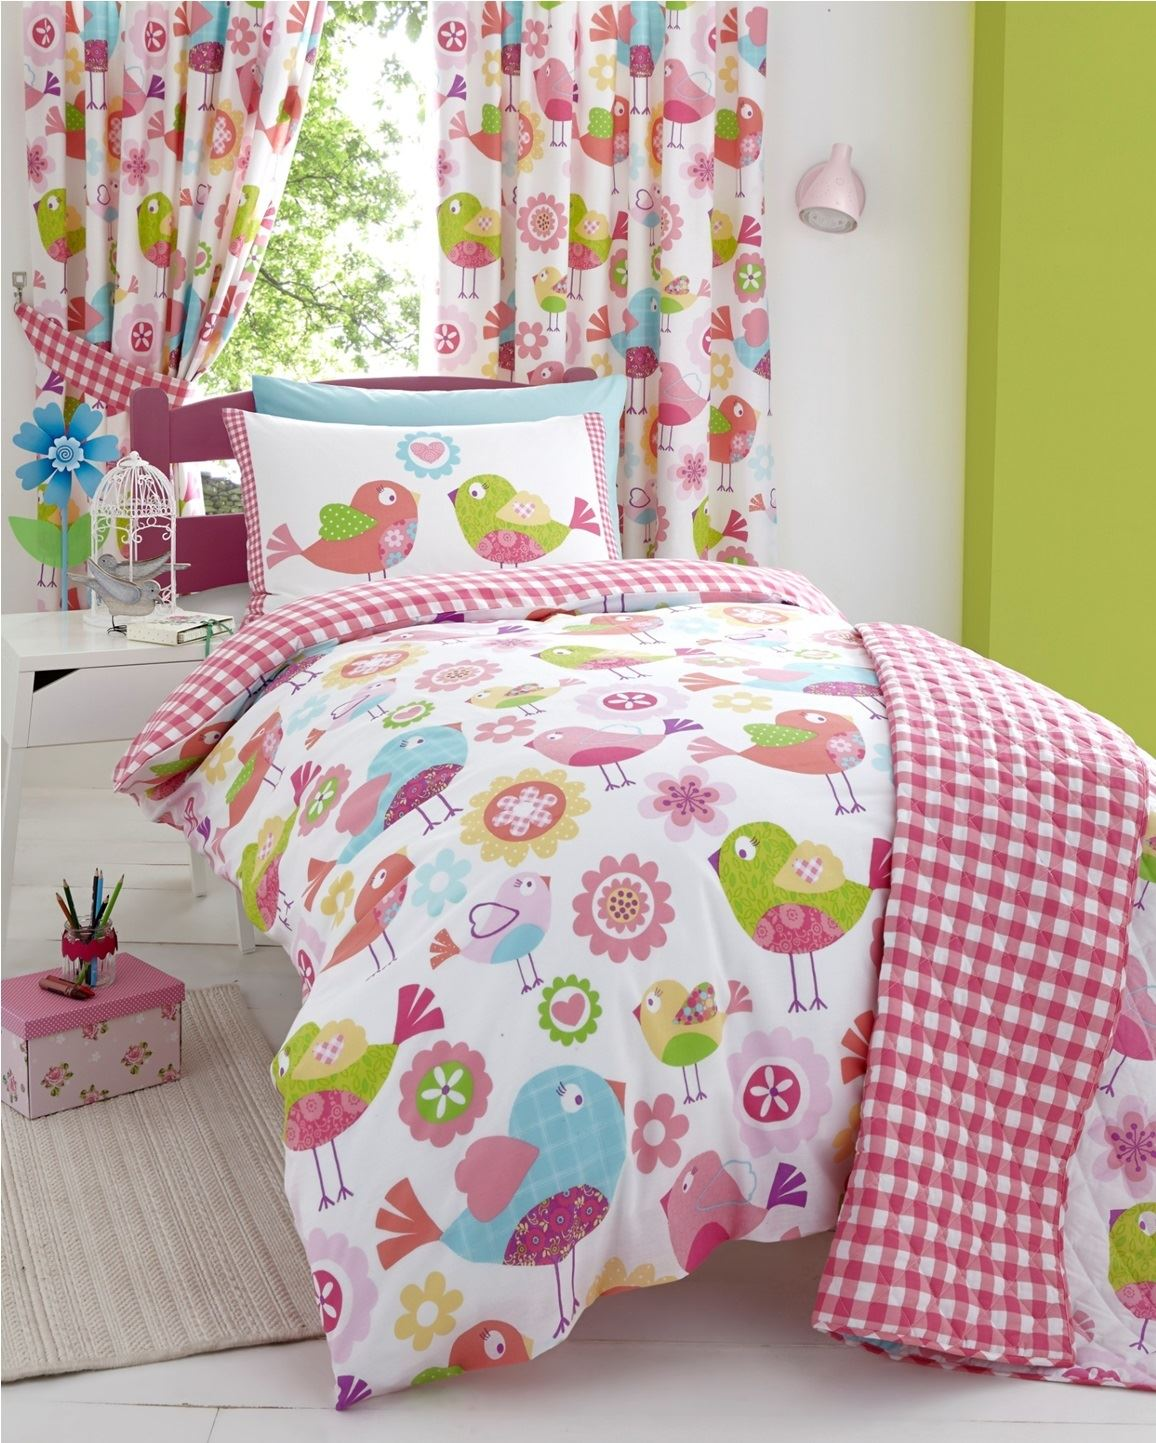 Primary Colors Bedding Welcome to our Primary Colors Bedding for Kids page! You may be one of those people who believe that baby's rooms look great in Primary Color Bedding, and we would have to agree. With red, blue, and y.